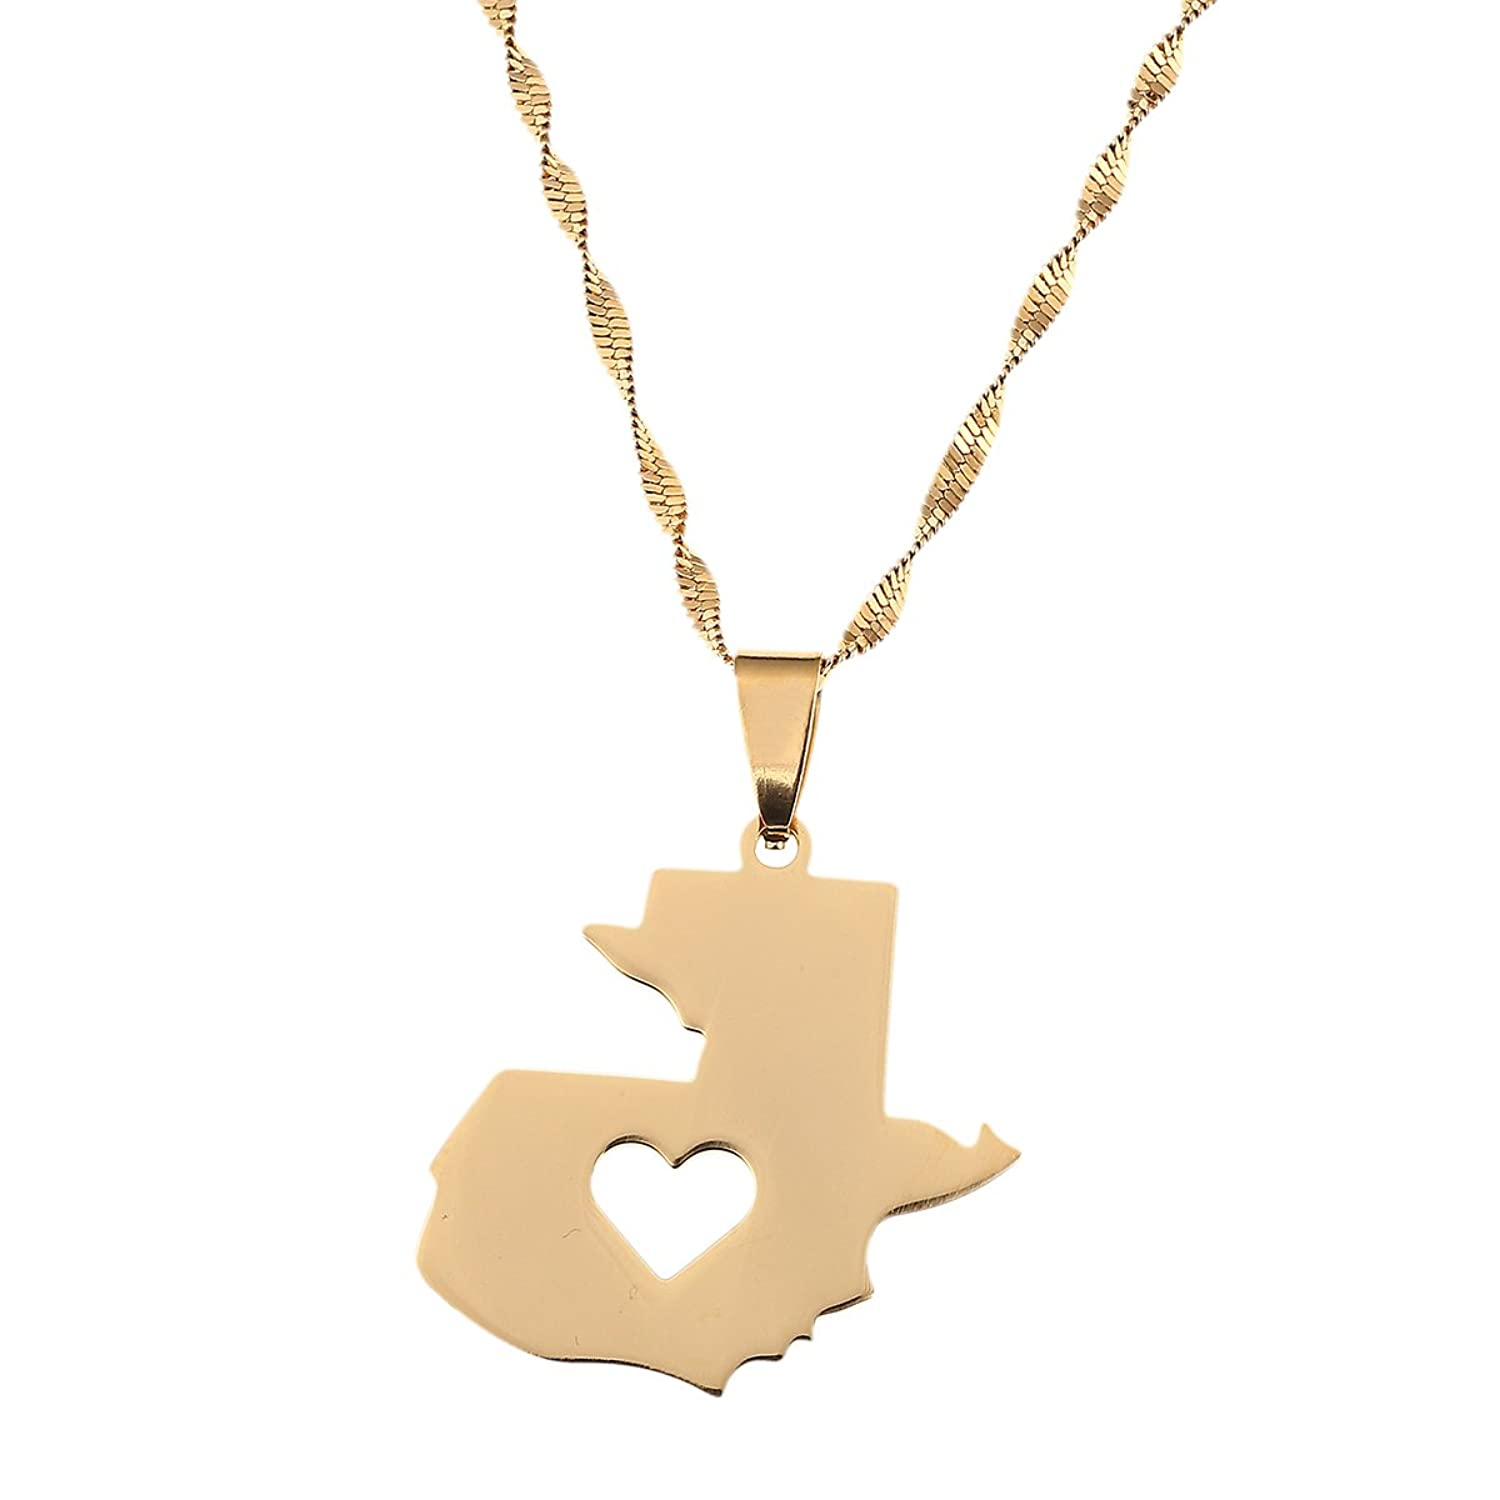 Stainless Steel Guatemala Map Pendant Necklace Gold Color Jewelry Map of Guatemala